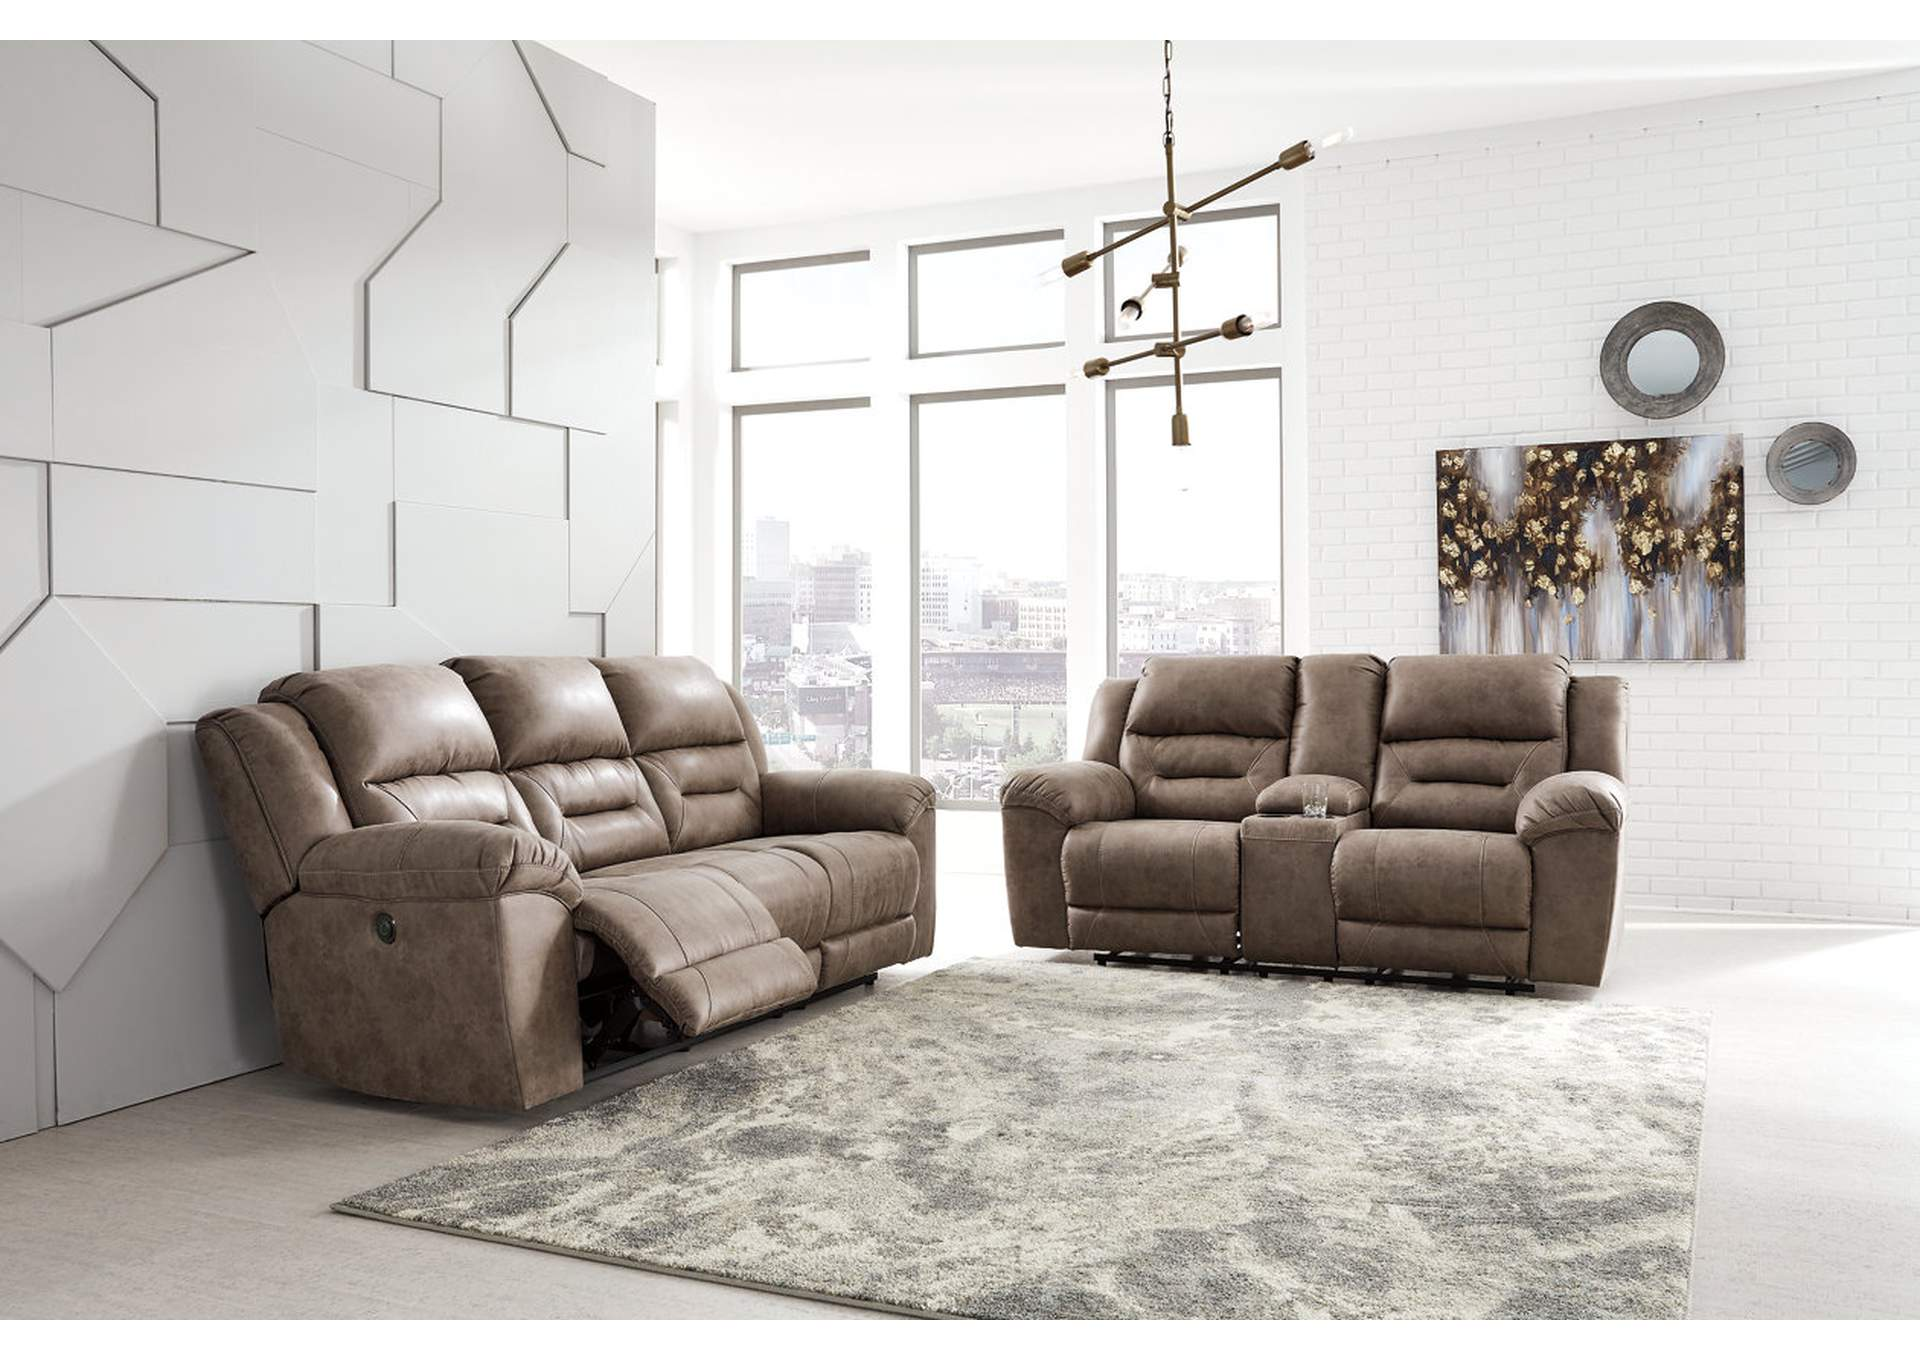 Stoneland Gray Power Reclining Sofa and Loveseat,Signature Design By Ashley